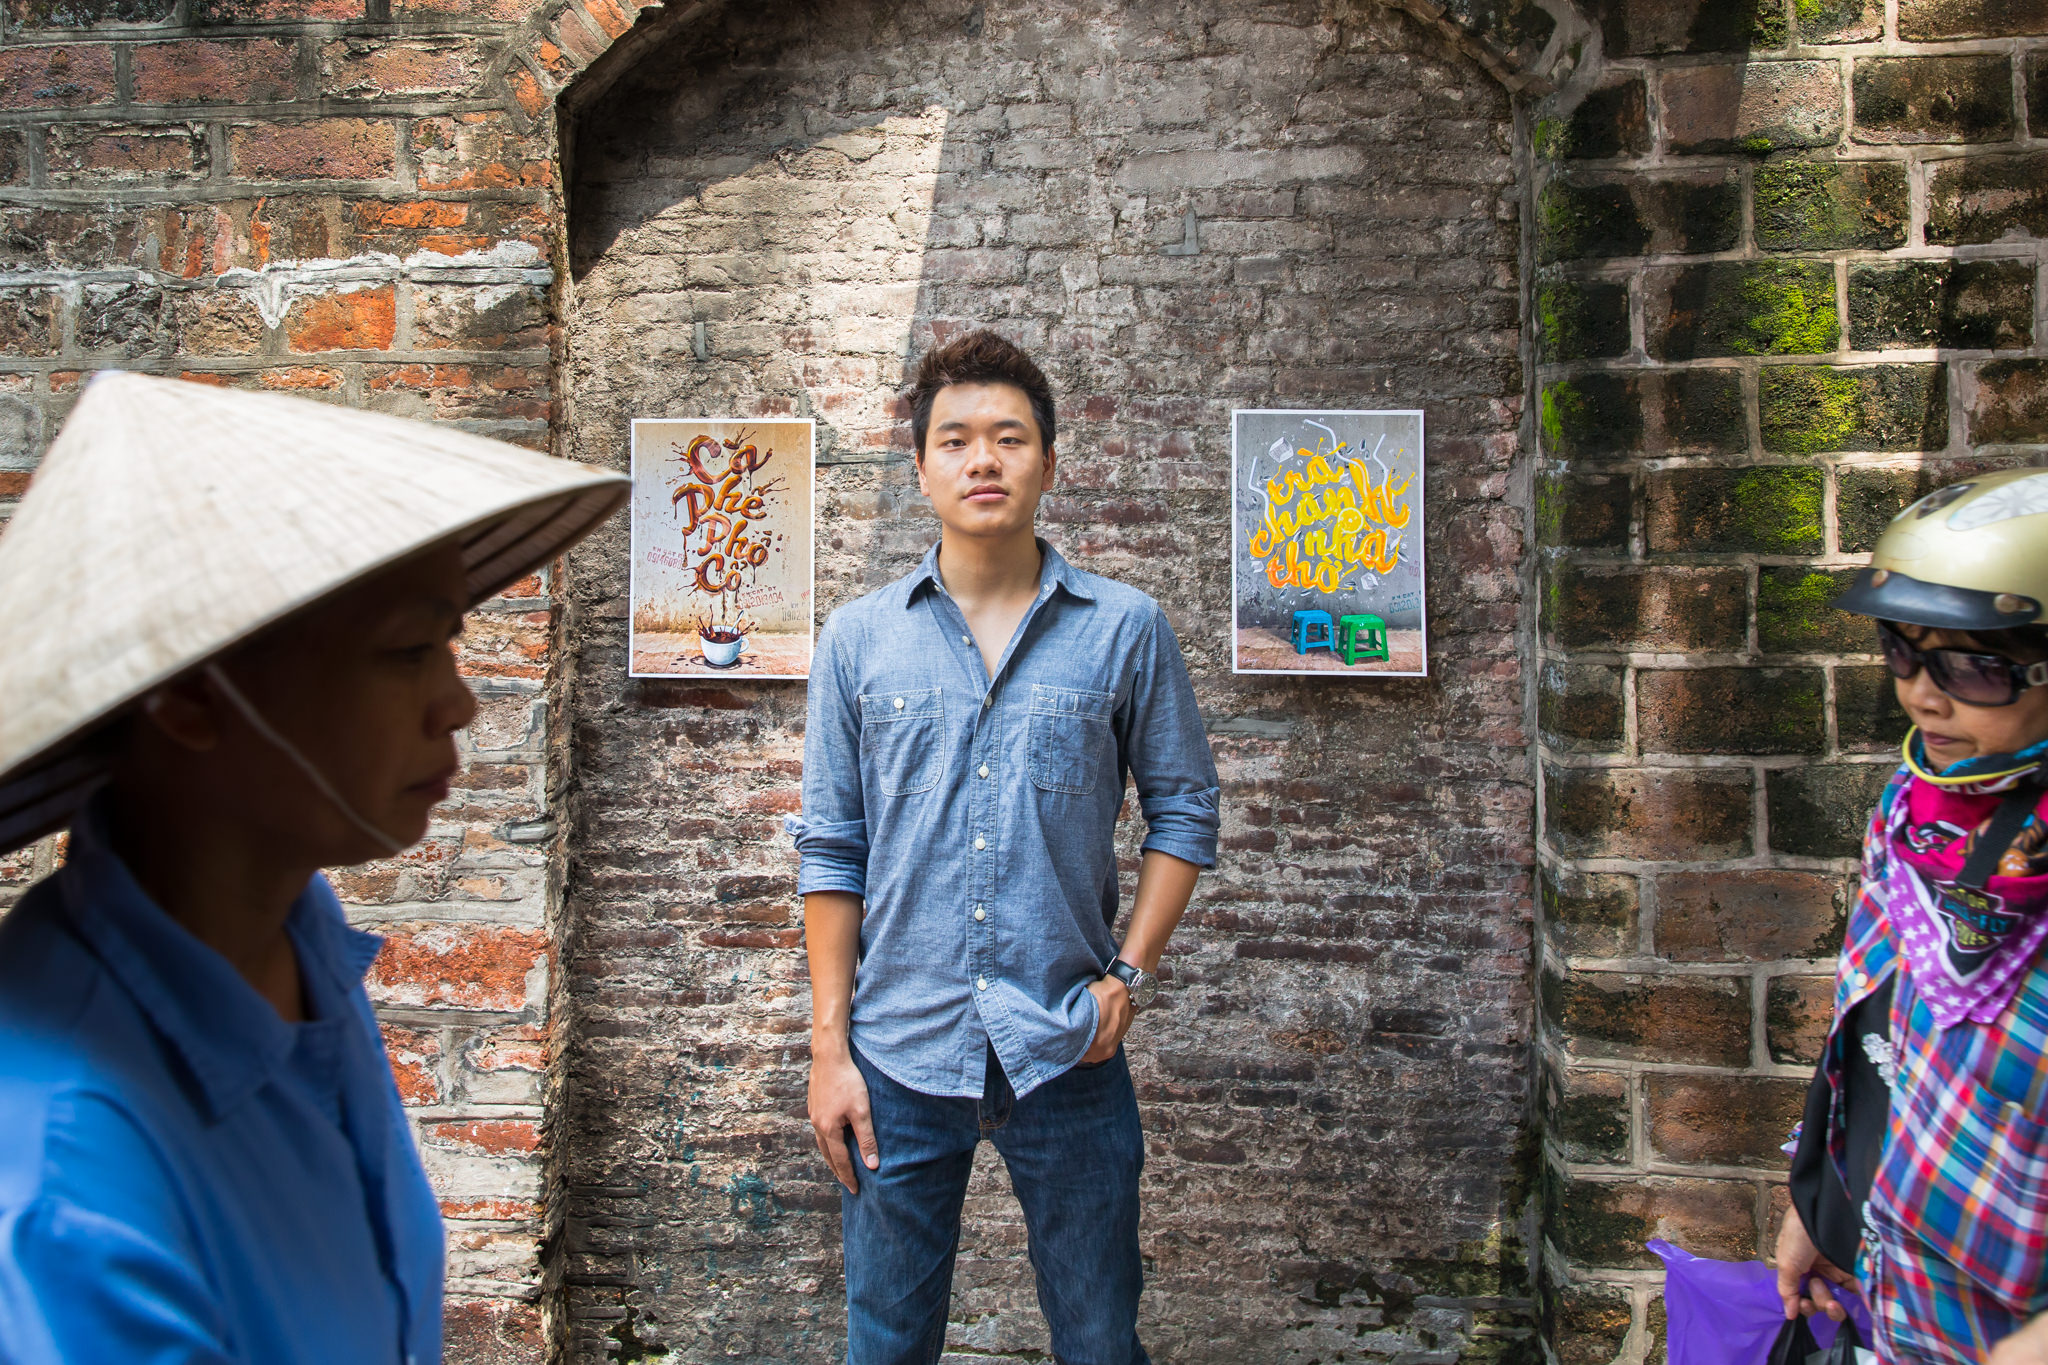 Hanoian Dao Duy Duong stands in front of his graphic design and typography work which is hanging under Hanoi's busy old city gate in Hoan Kiem, Hanoi, Viet Nam | Hanoi Photographer